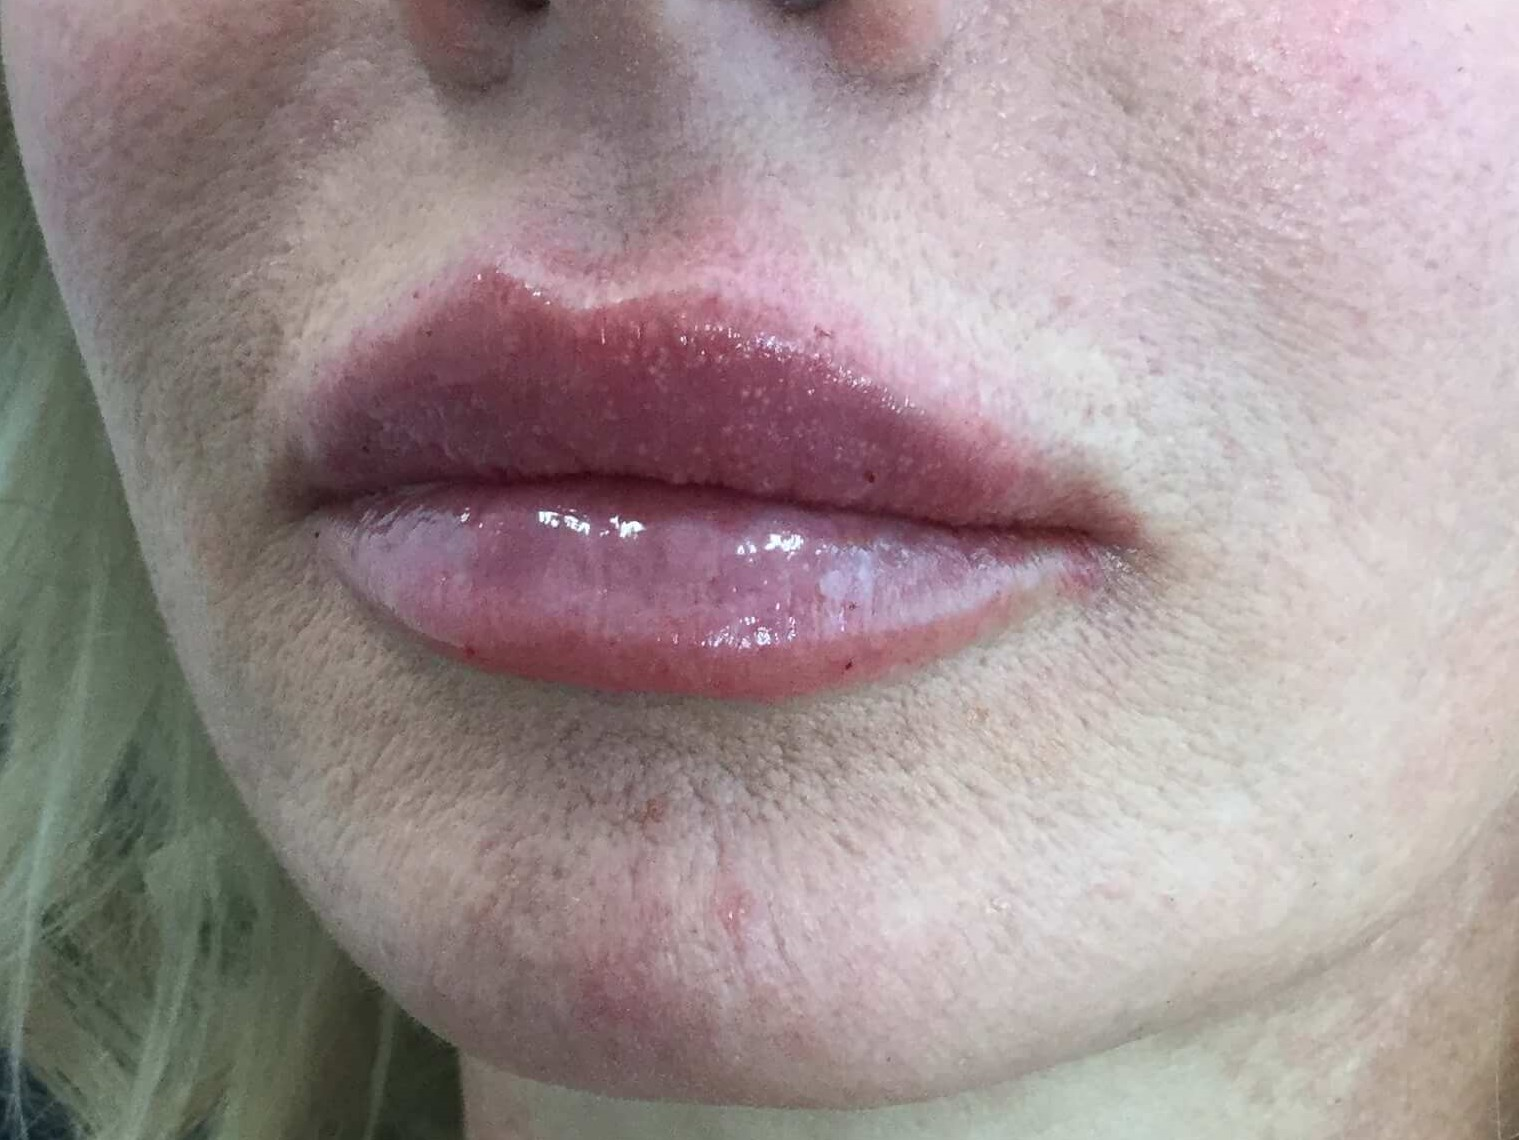 WOMAN IN DALLAS HAS LIP AUGMENTATION WITH 1 SYRINGE OF VERSA DERMAL FILLER